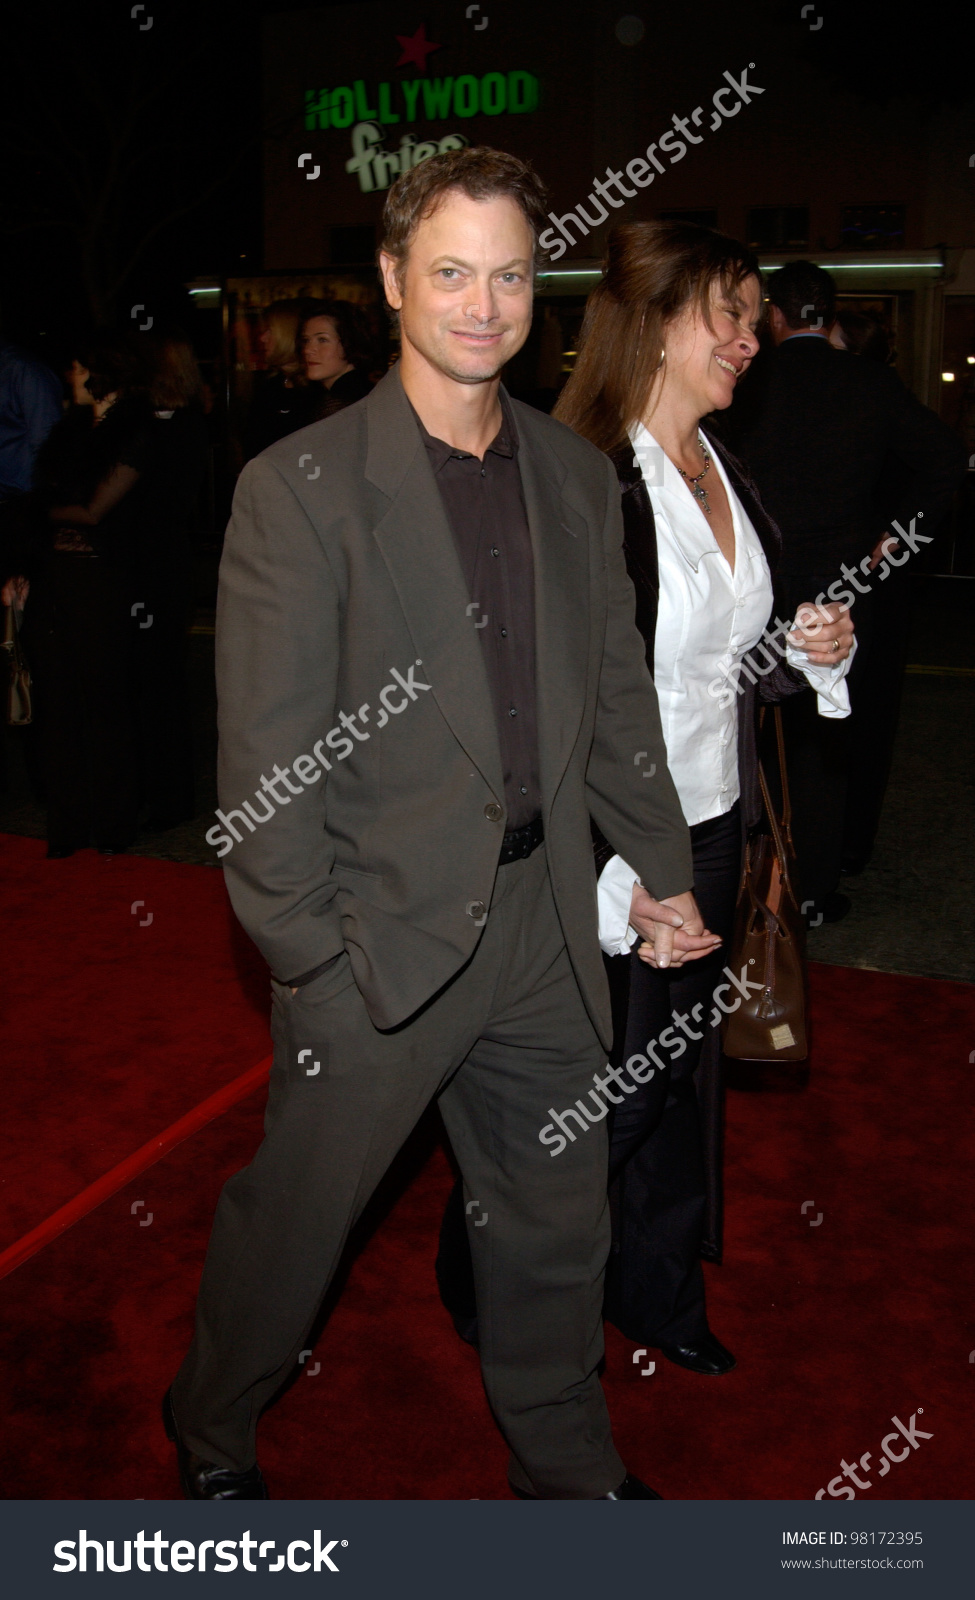 Actor Gary Sinise & Wife At The World Premiere, In Los Angeles, Of.